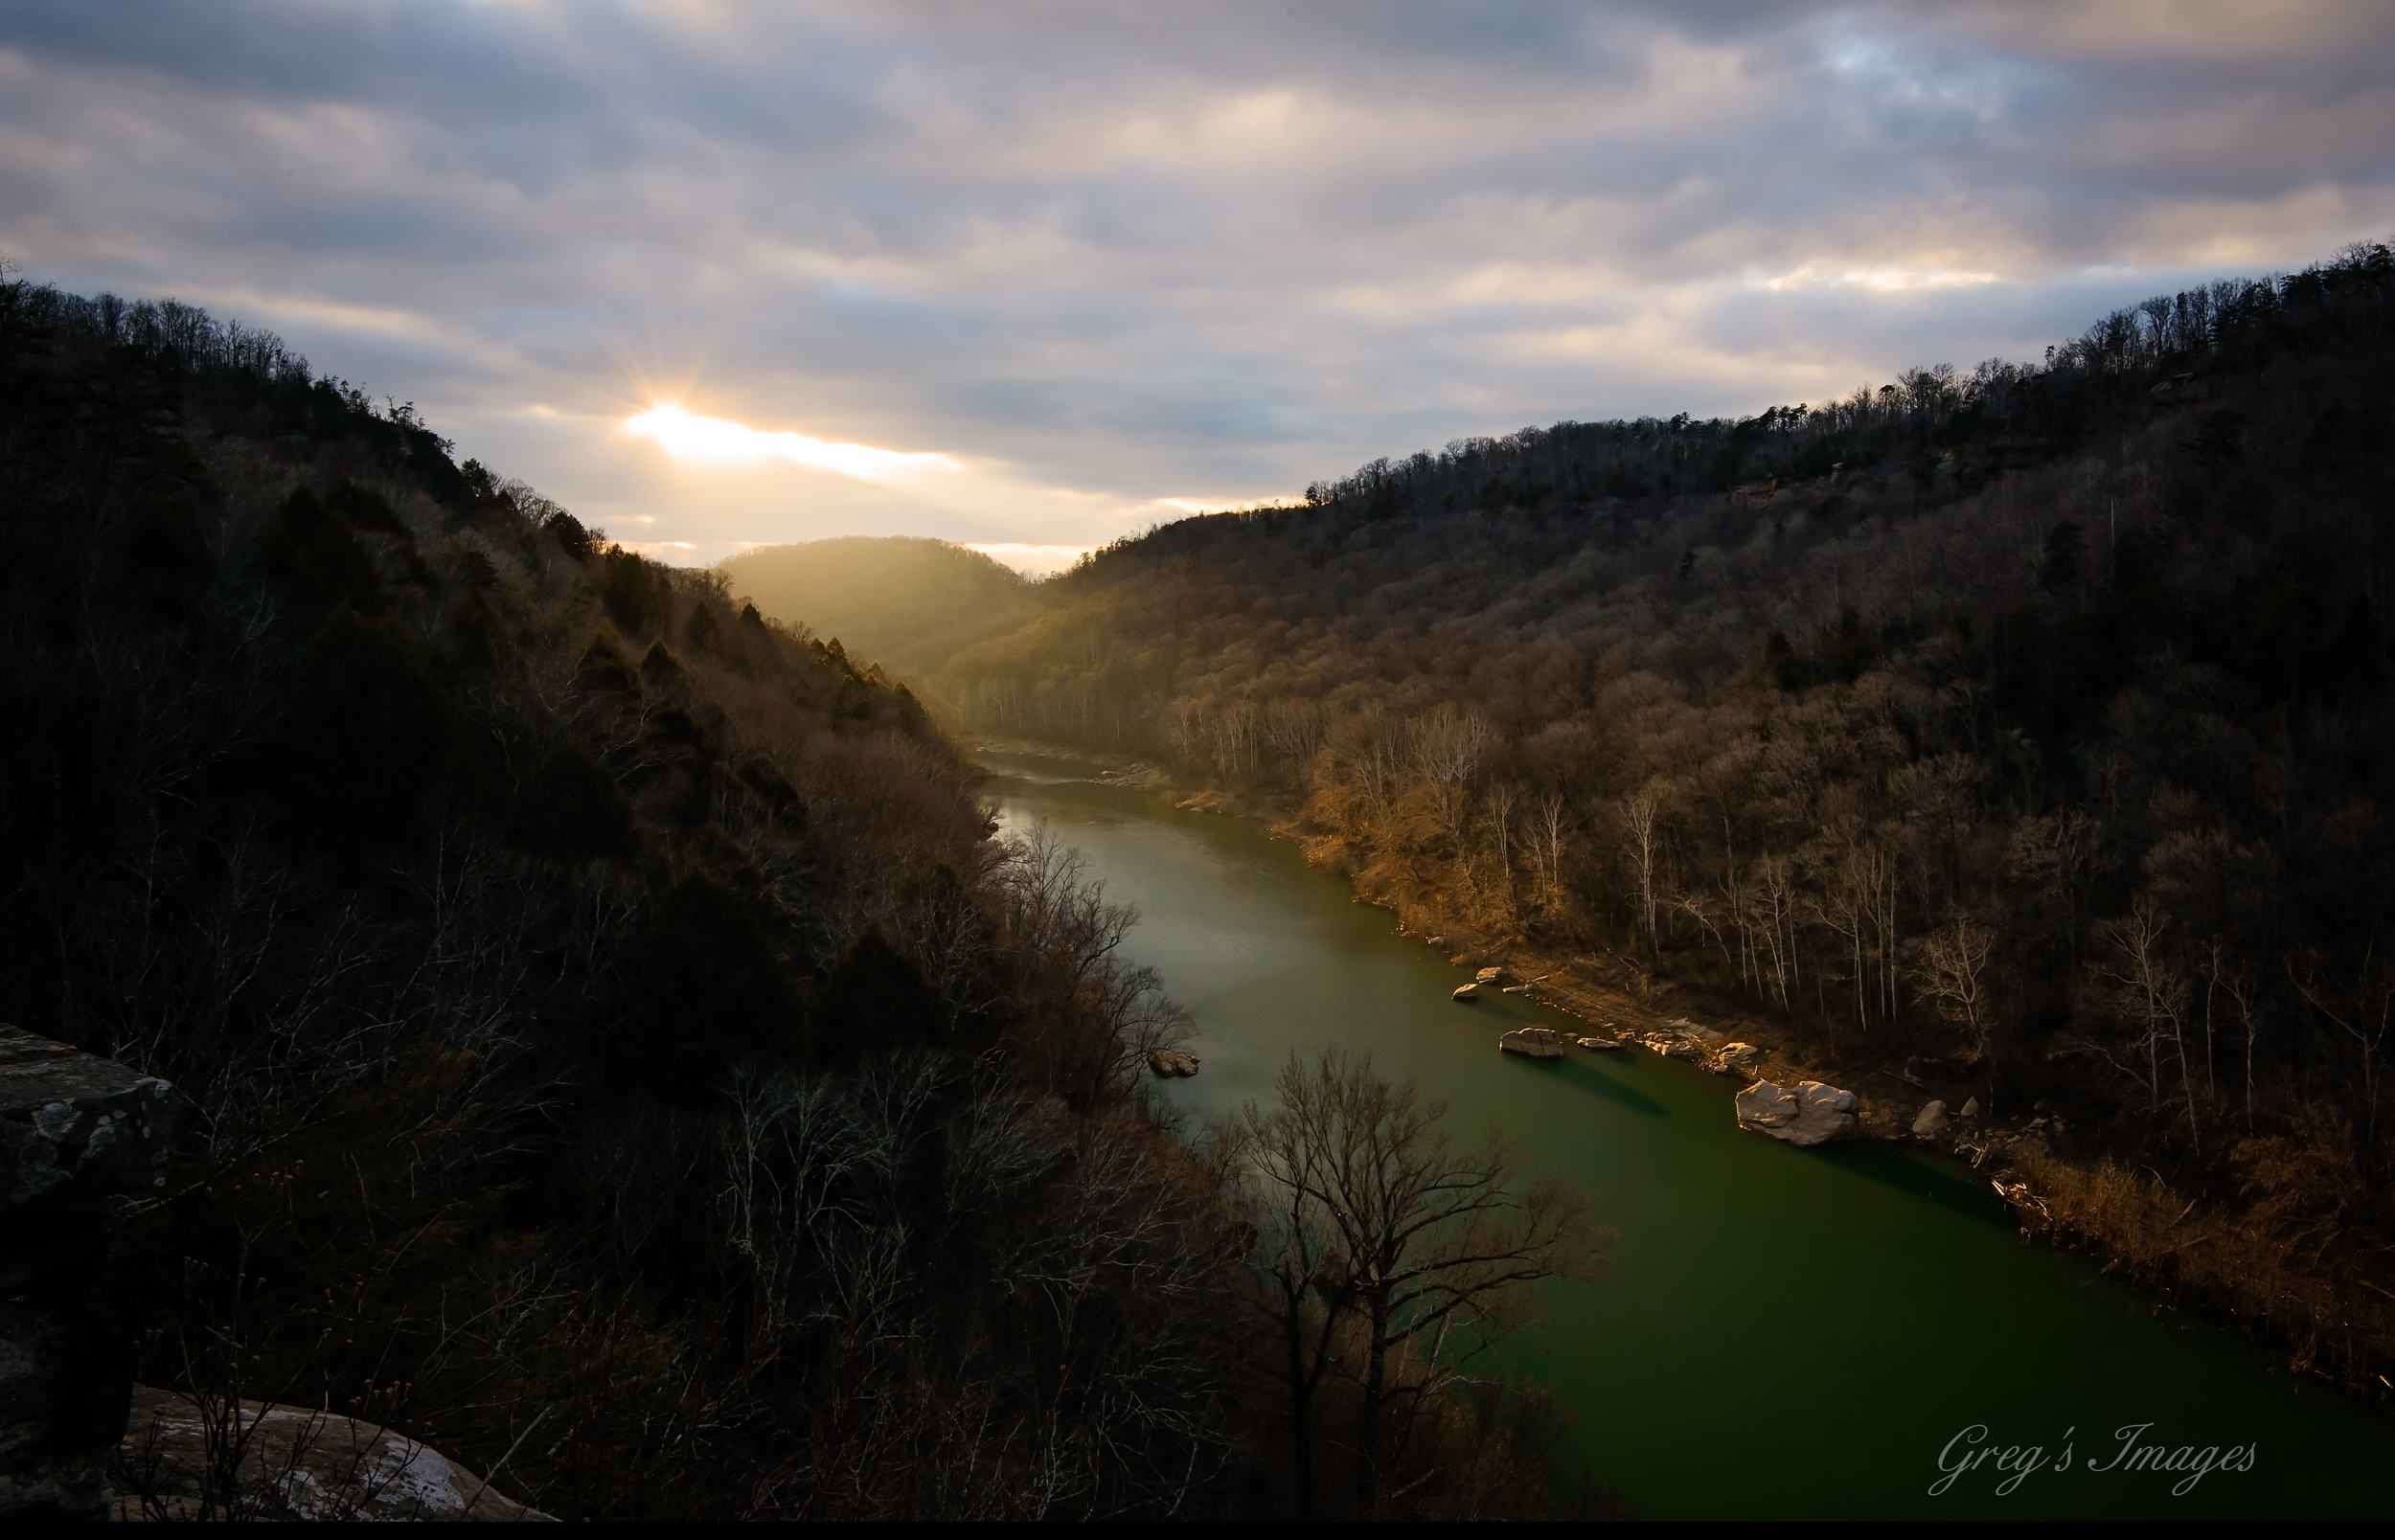 The evening sun breaking through the clouds and illuminating the South Fork River.